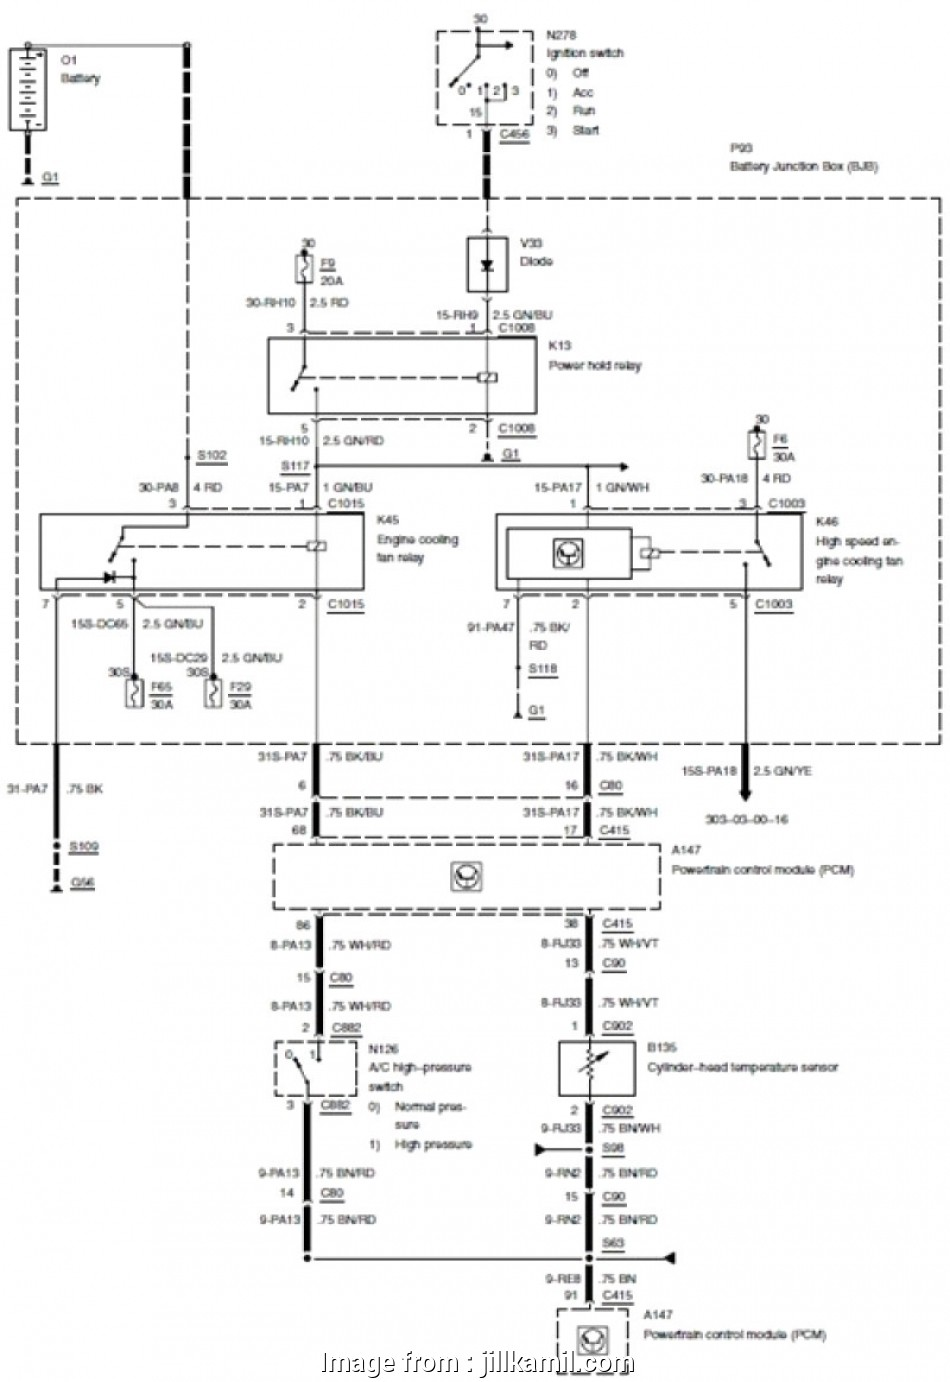 Ford Ka Electrical Wiring Diagram Popular Original 10 2002